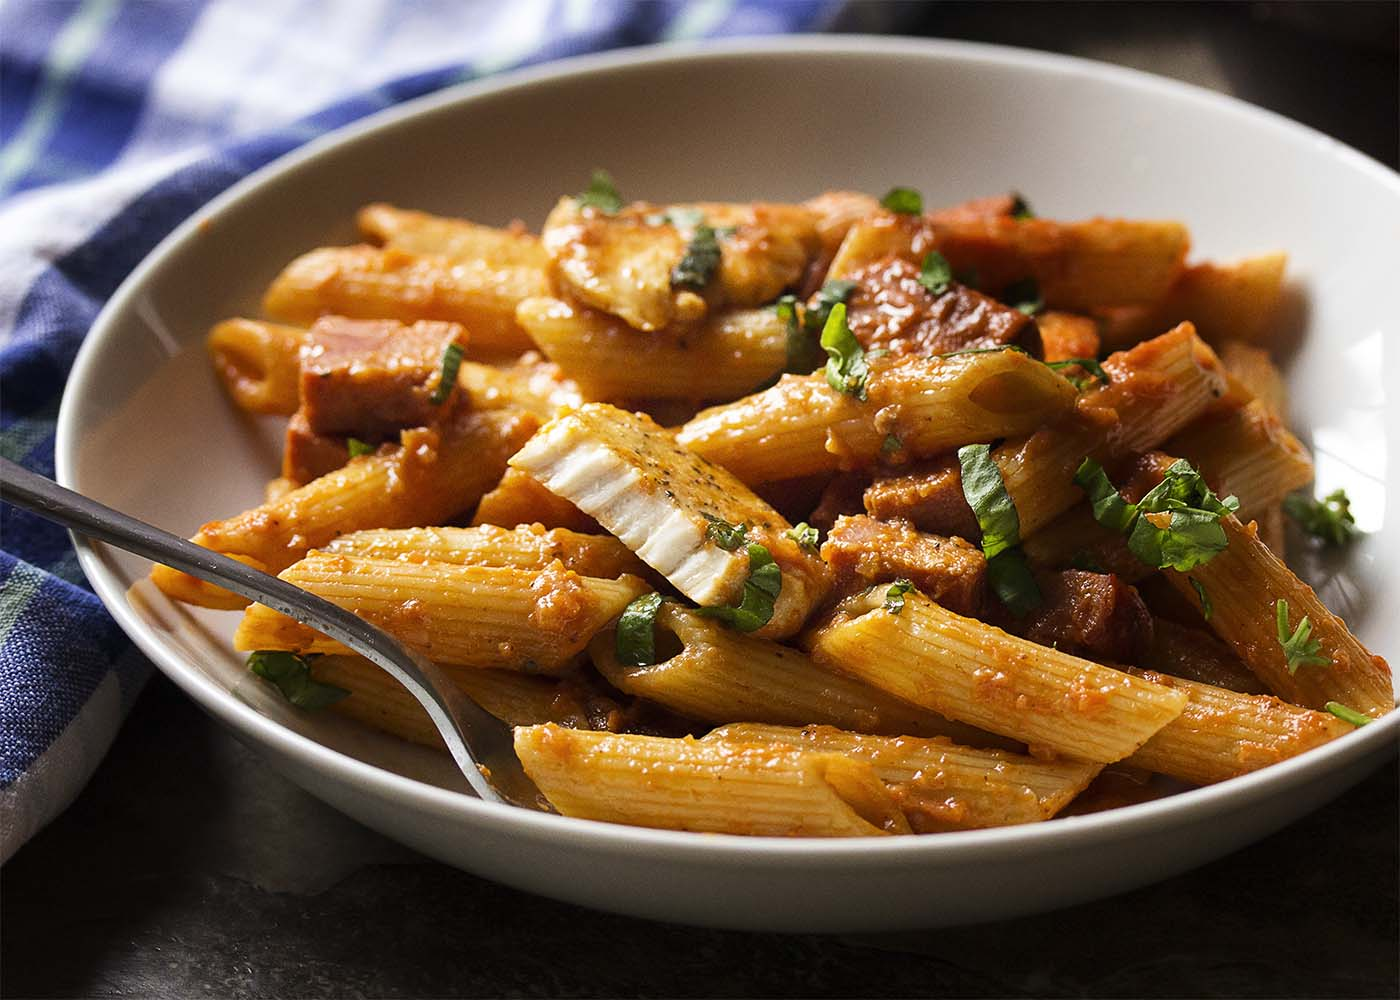 A bowl of penne alla vodka with a glass of wine in the background showing a cut open slice of chicken.